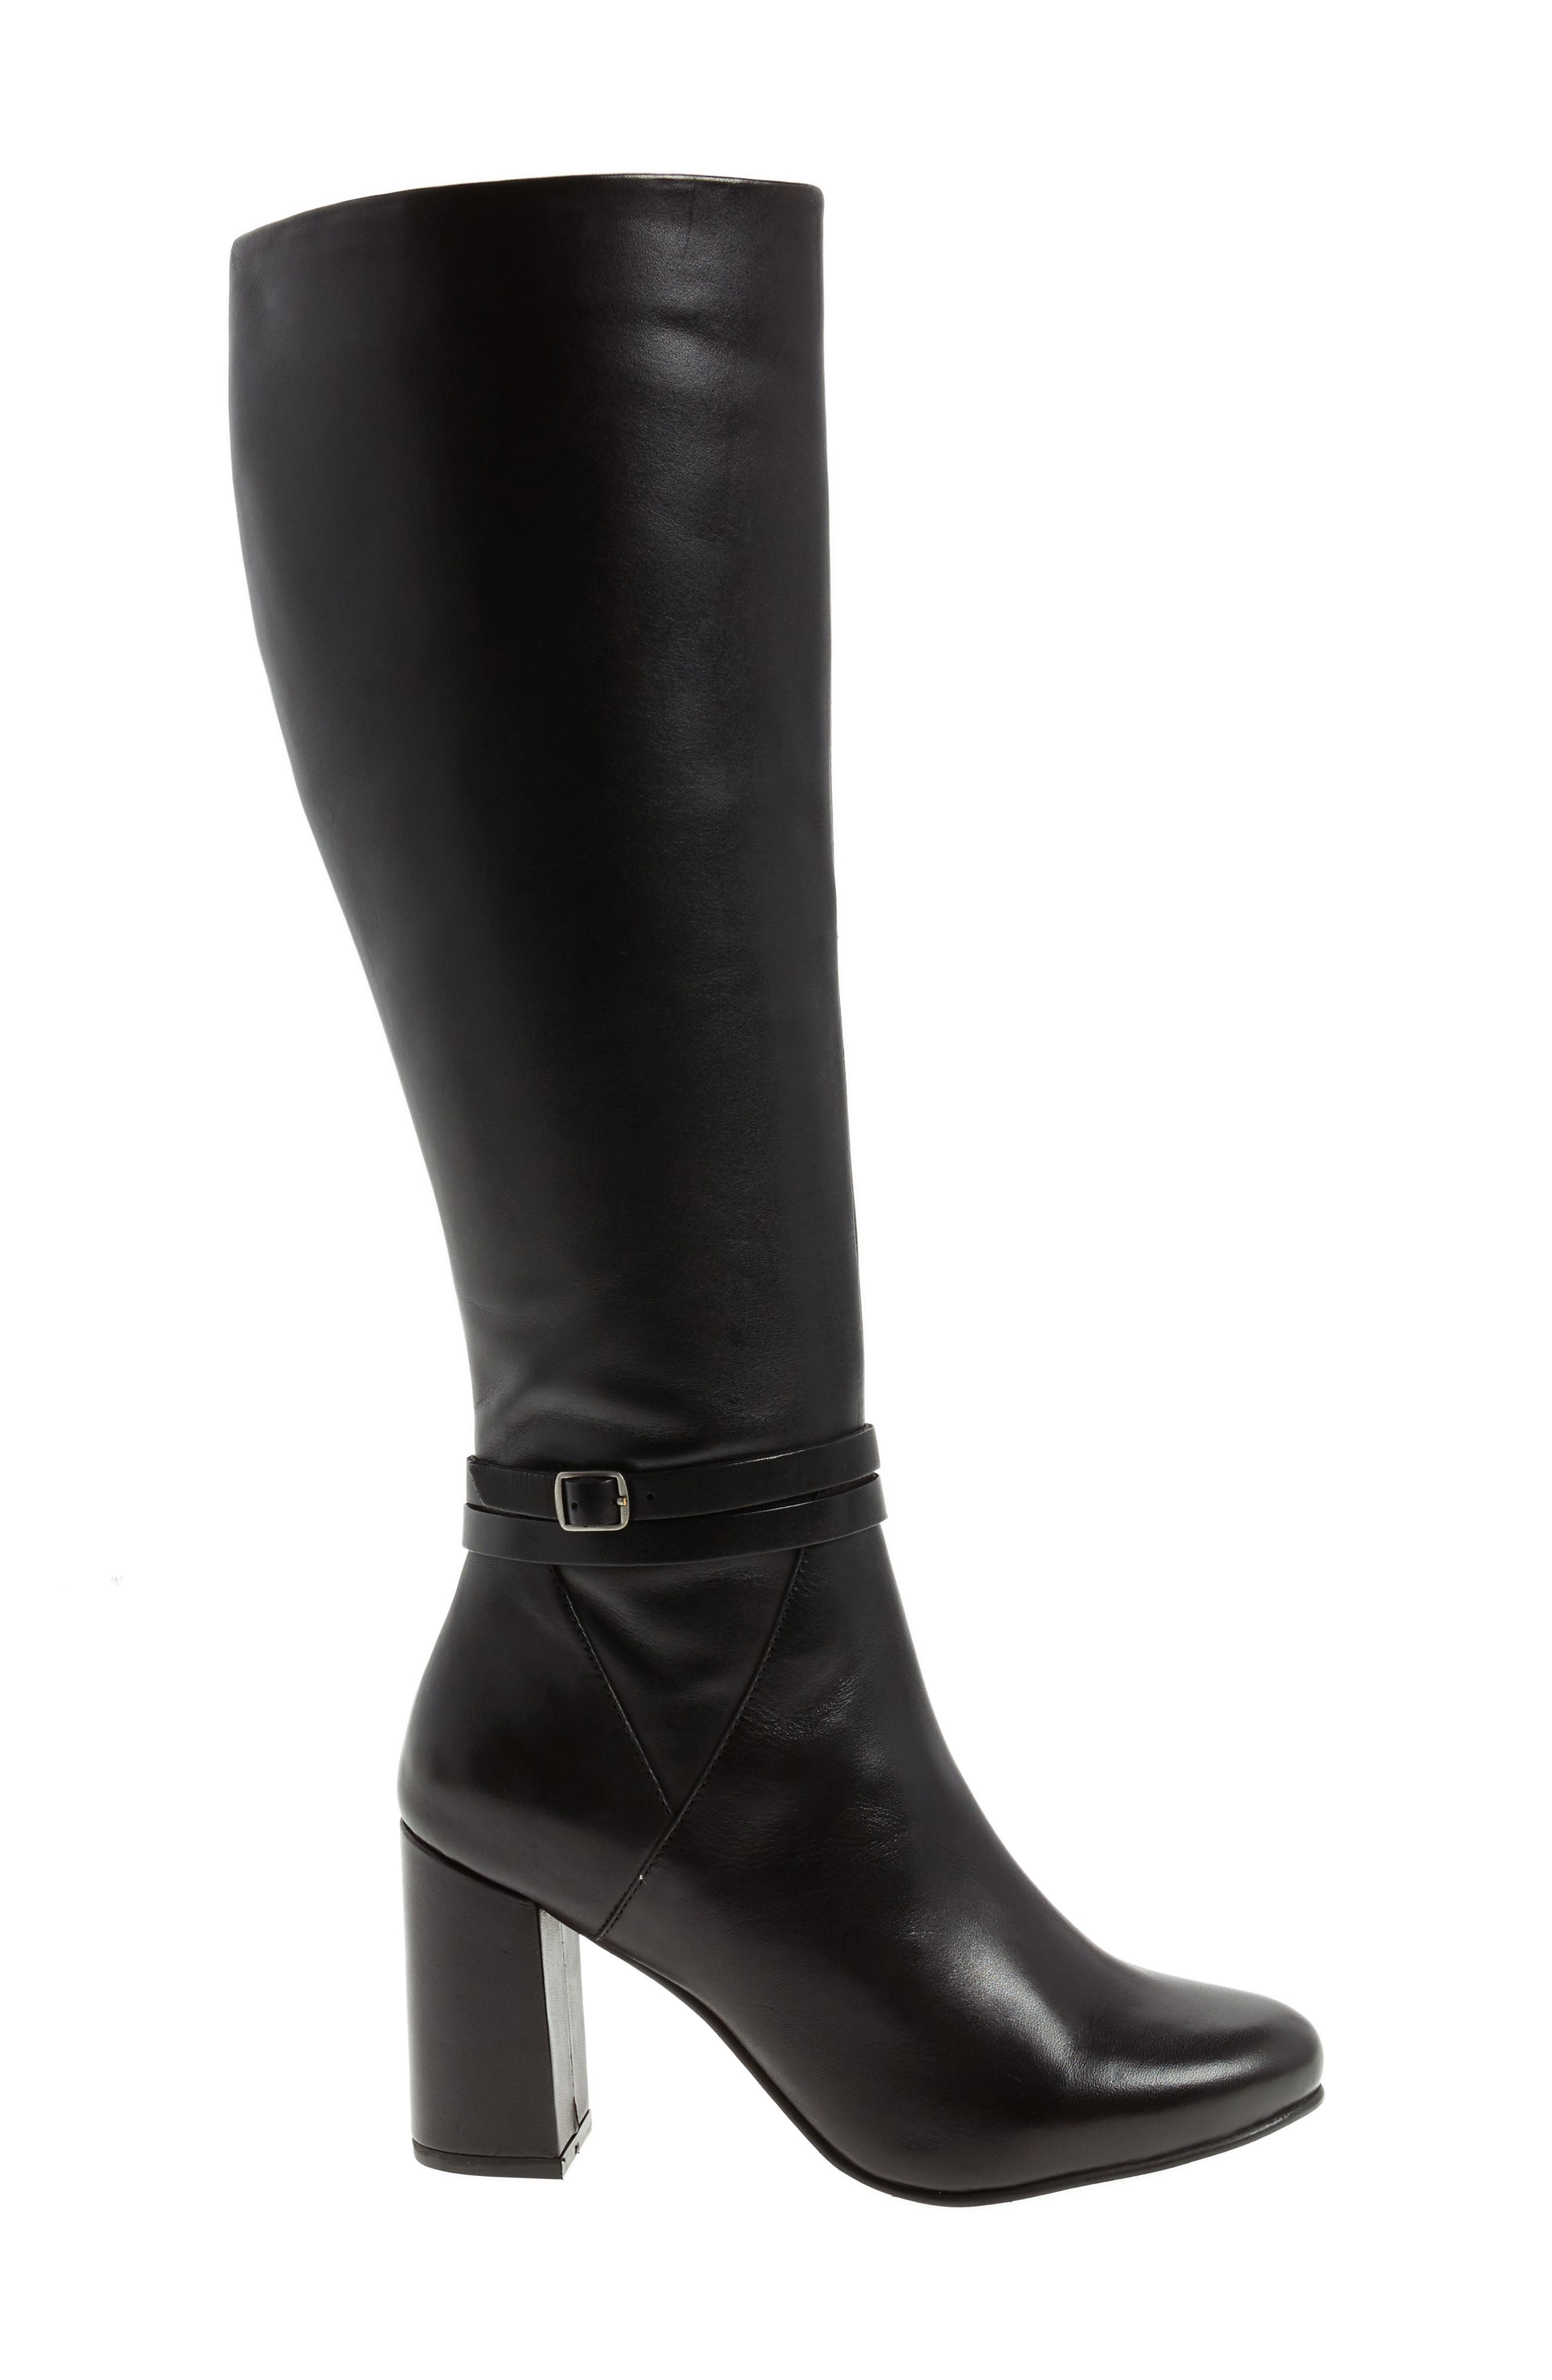 Ovation Knee High Boot,                             Alternate thumbnail 3, color,                             001